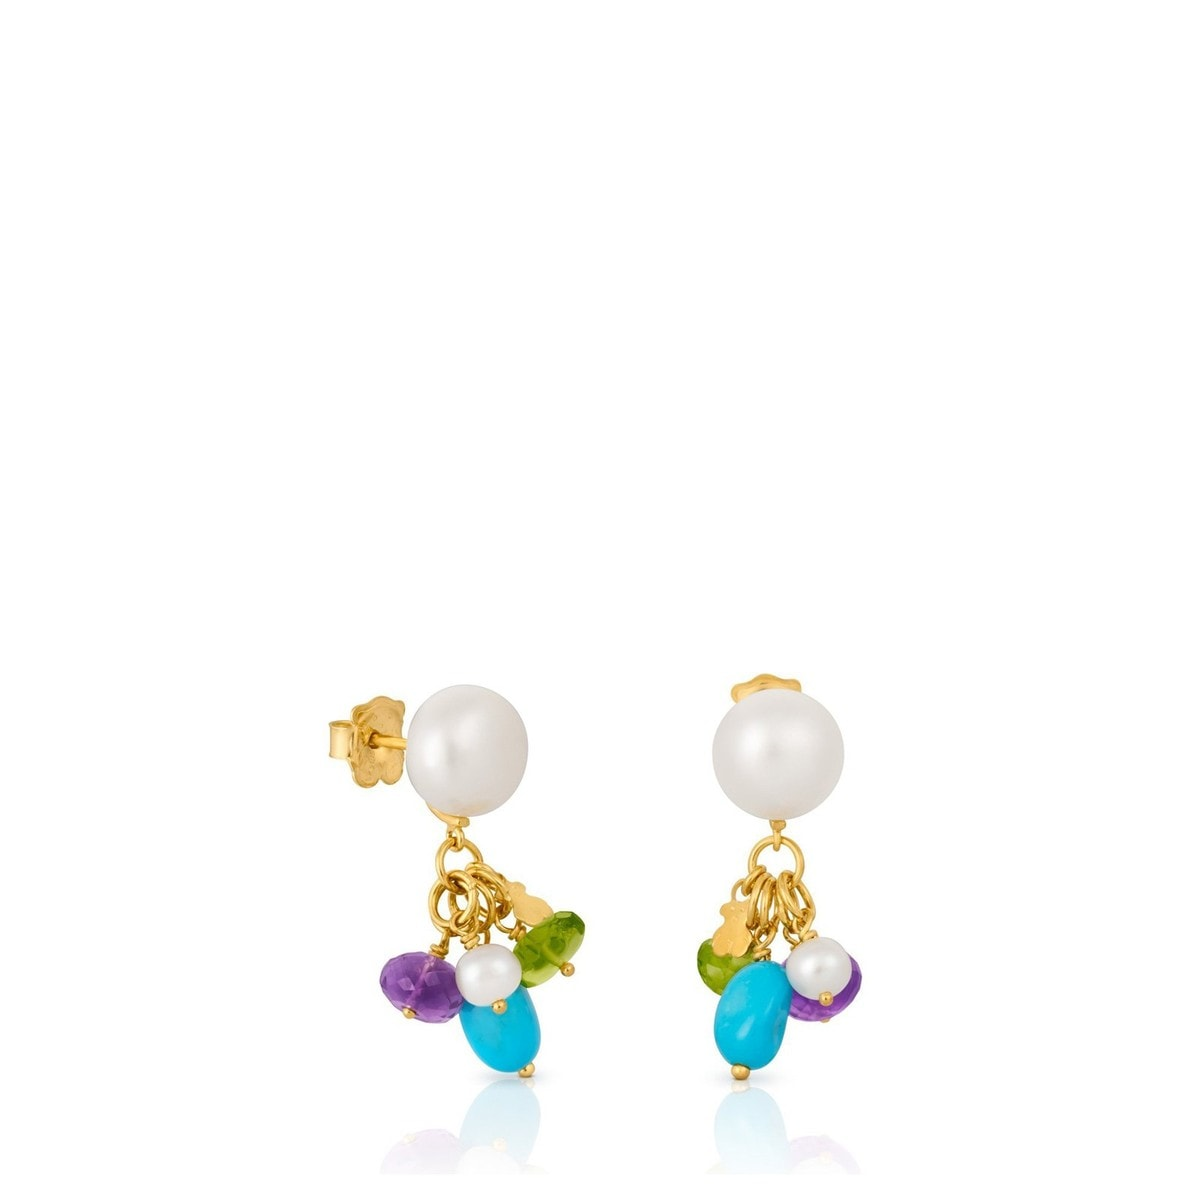 Gold Caprice Earrings with Gemstones and Pearl